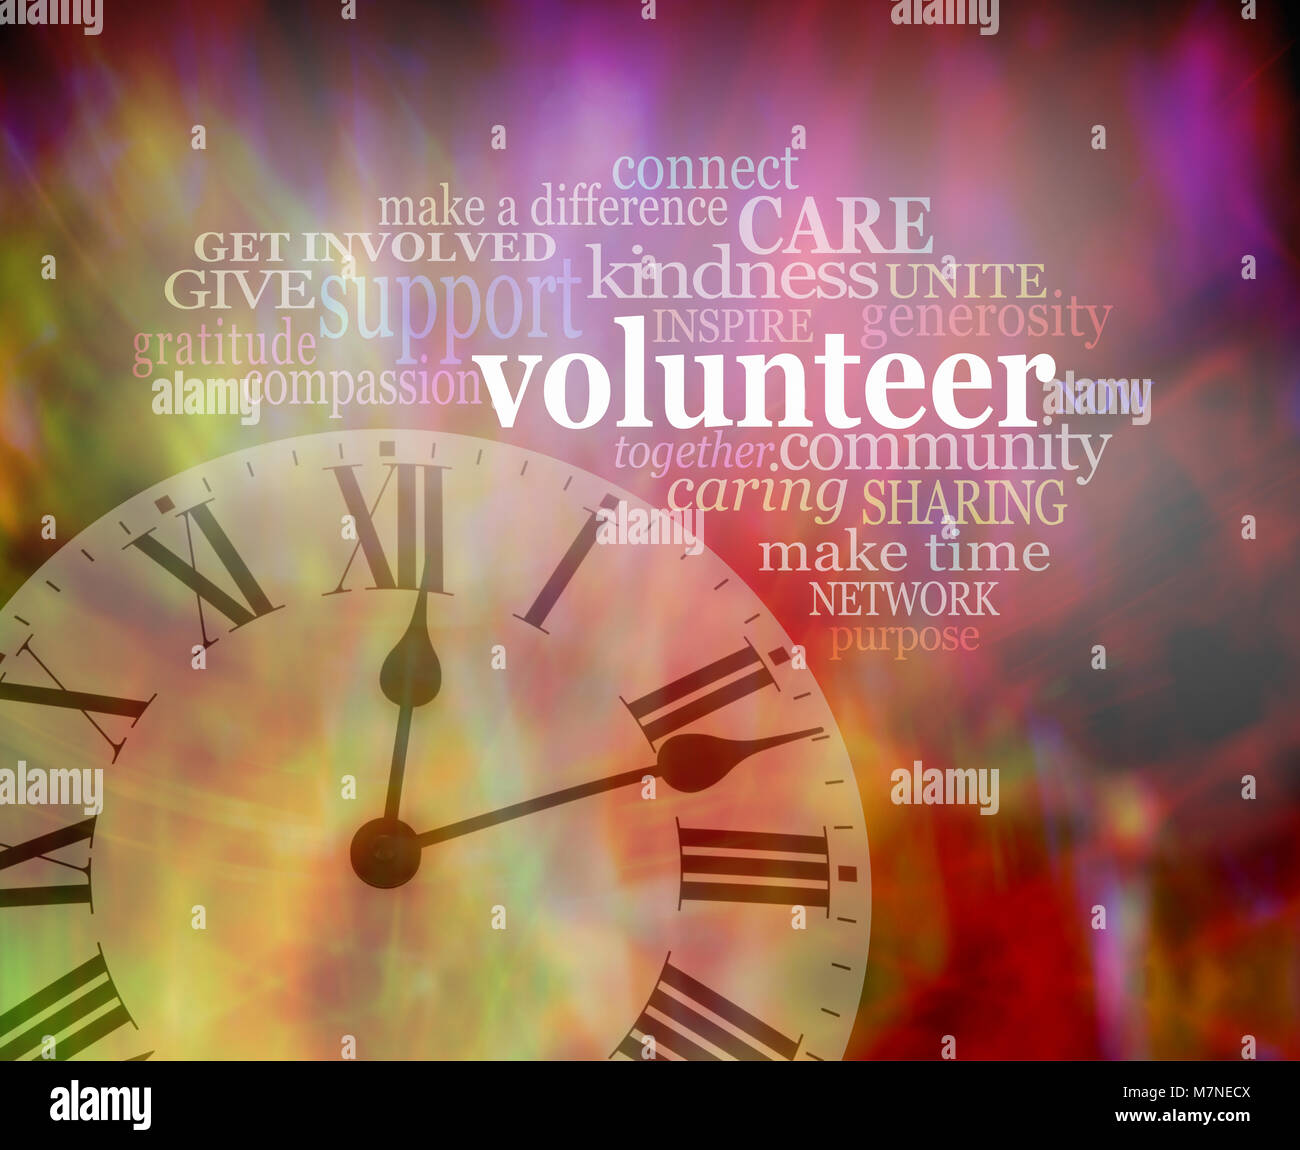 Please volunteer some time NOW  - vibrant red modern art effect background with a clock face bottom left and a VOLUNTEER - Stock Image